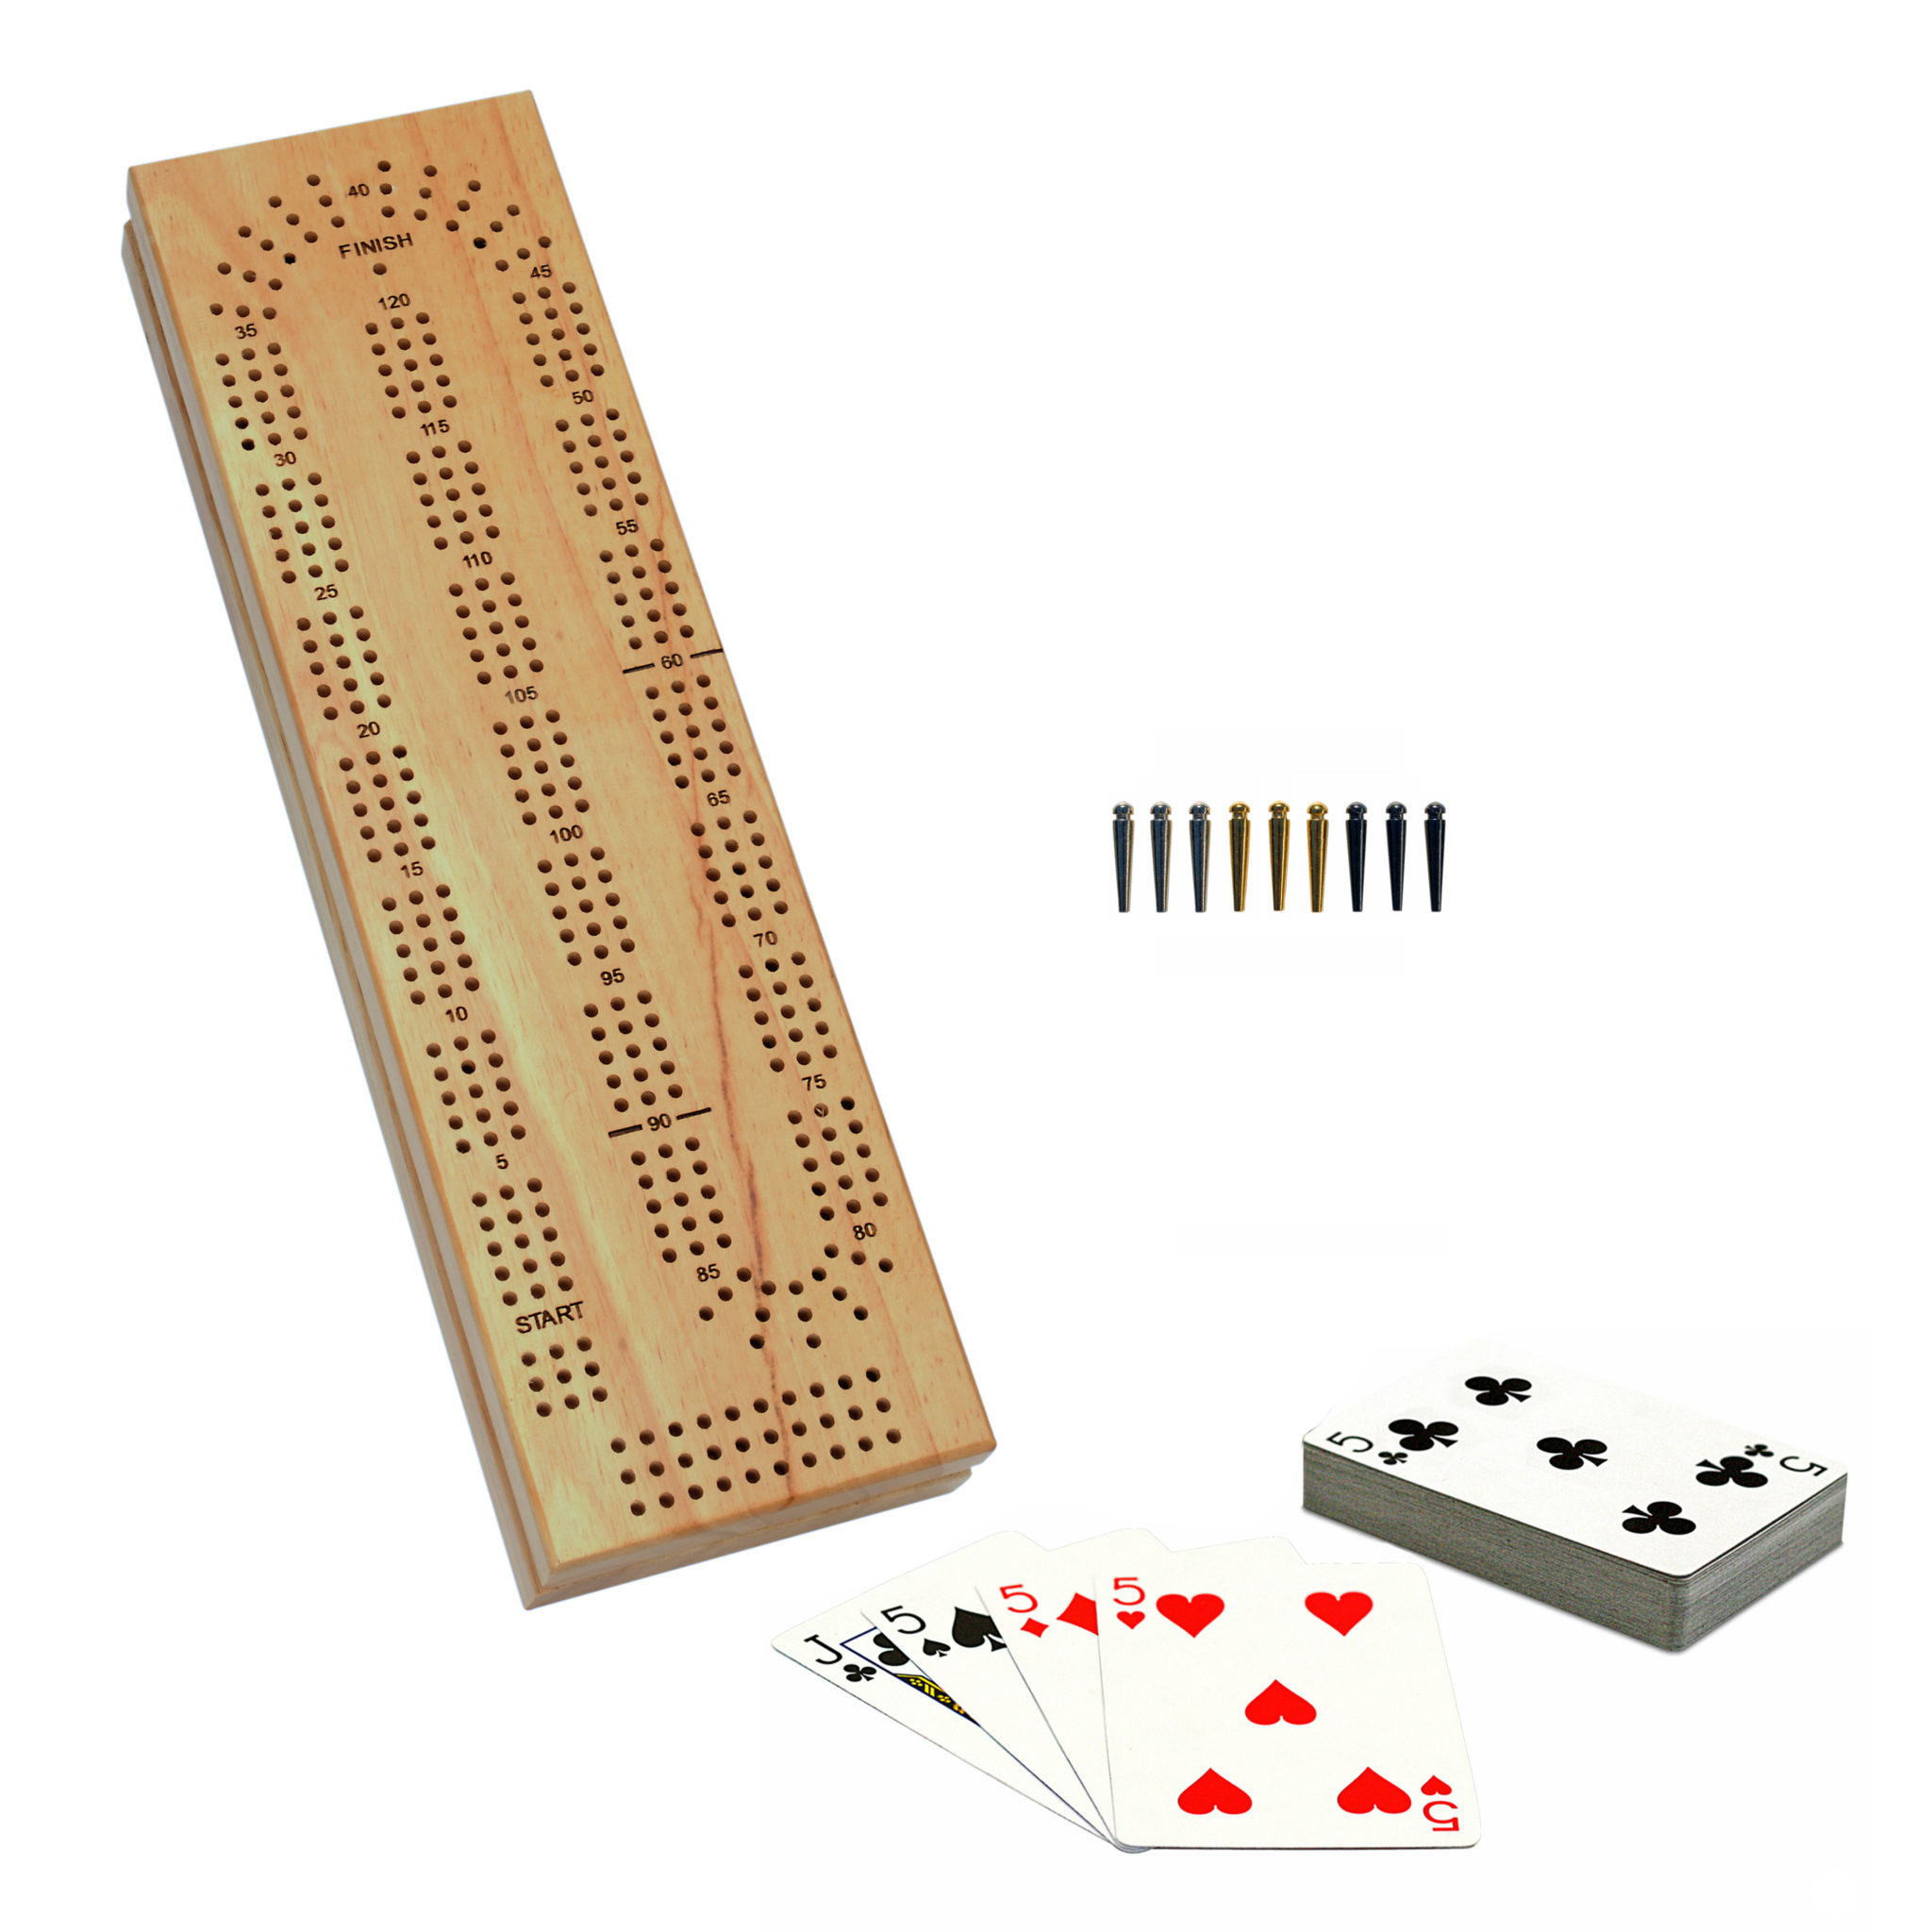 how to play cribbage without the board